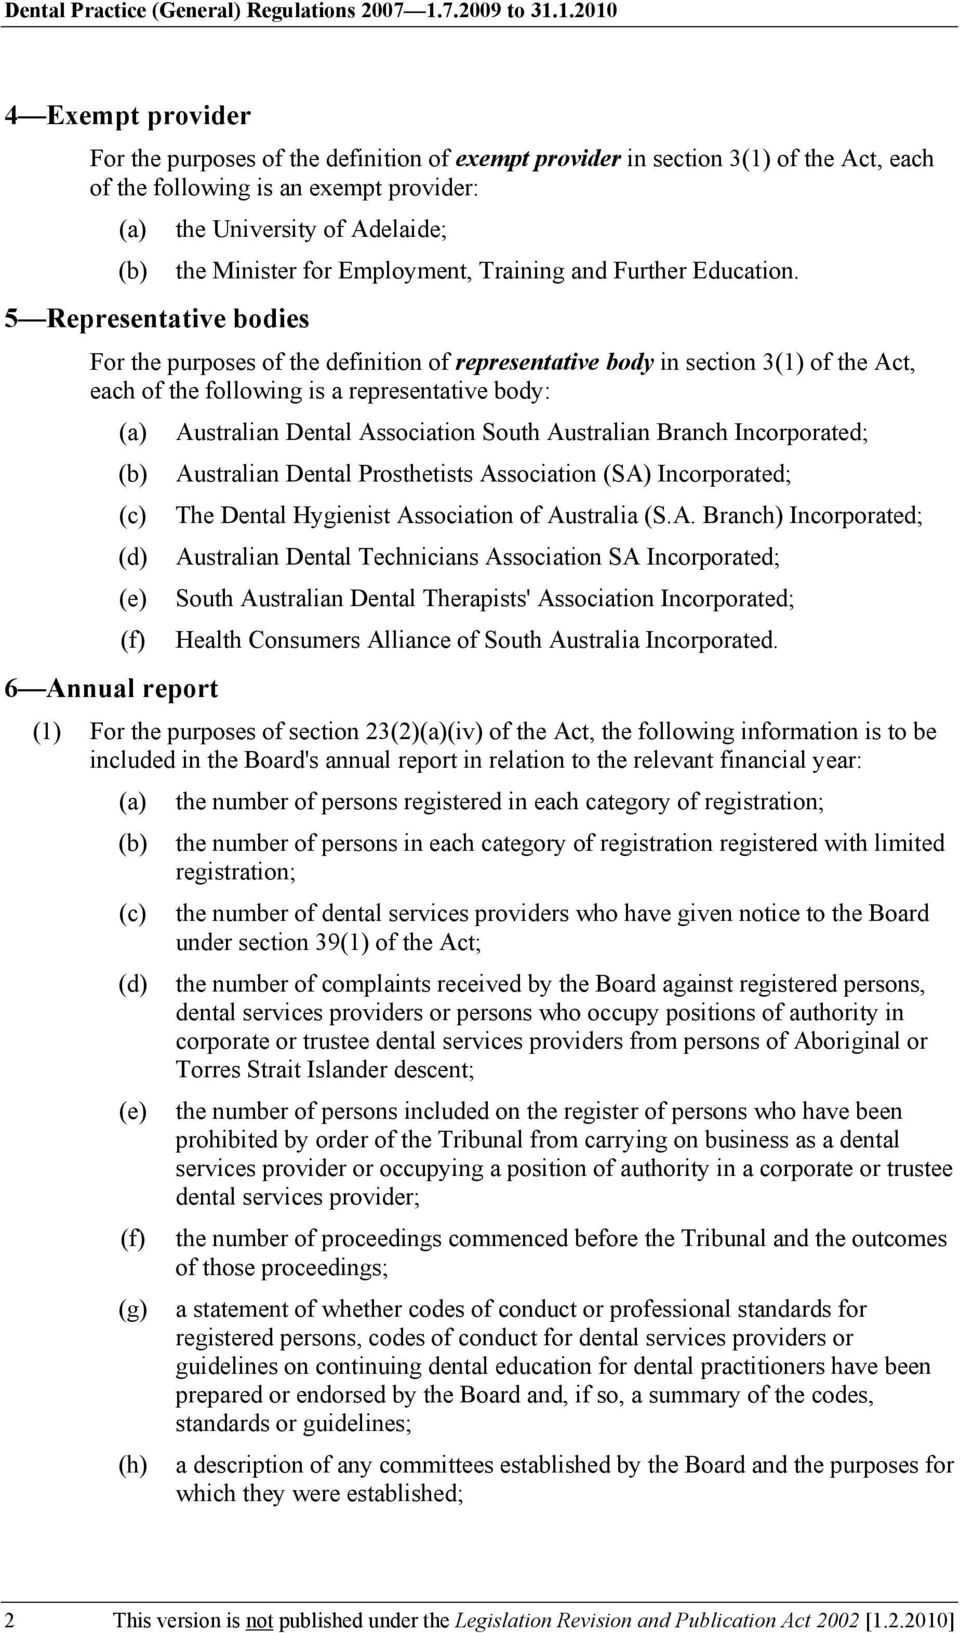 1.2010 4 Exempt provider For the purposes of the definition of exempt provider in section 3(1) of the Act, each of the following is an exempt provider: (a) the University of Adelaide; (b) the